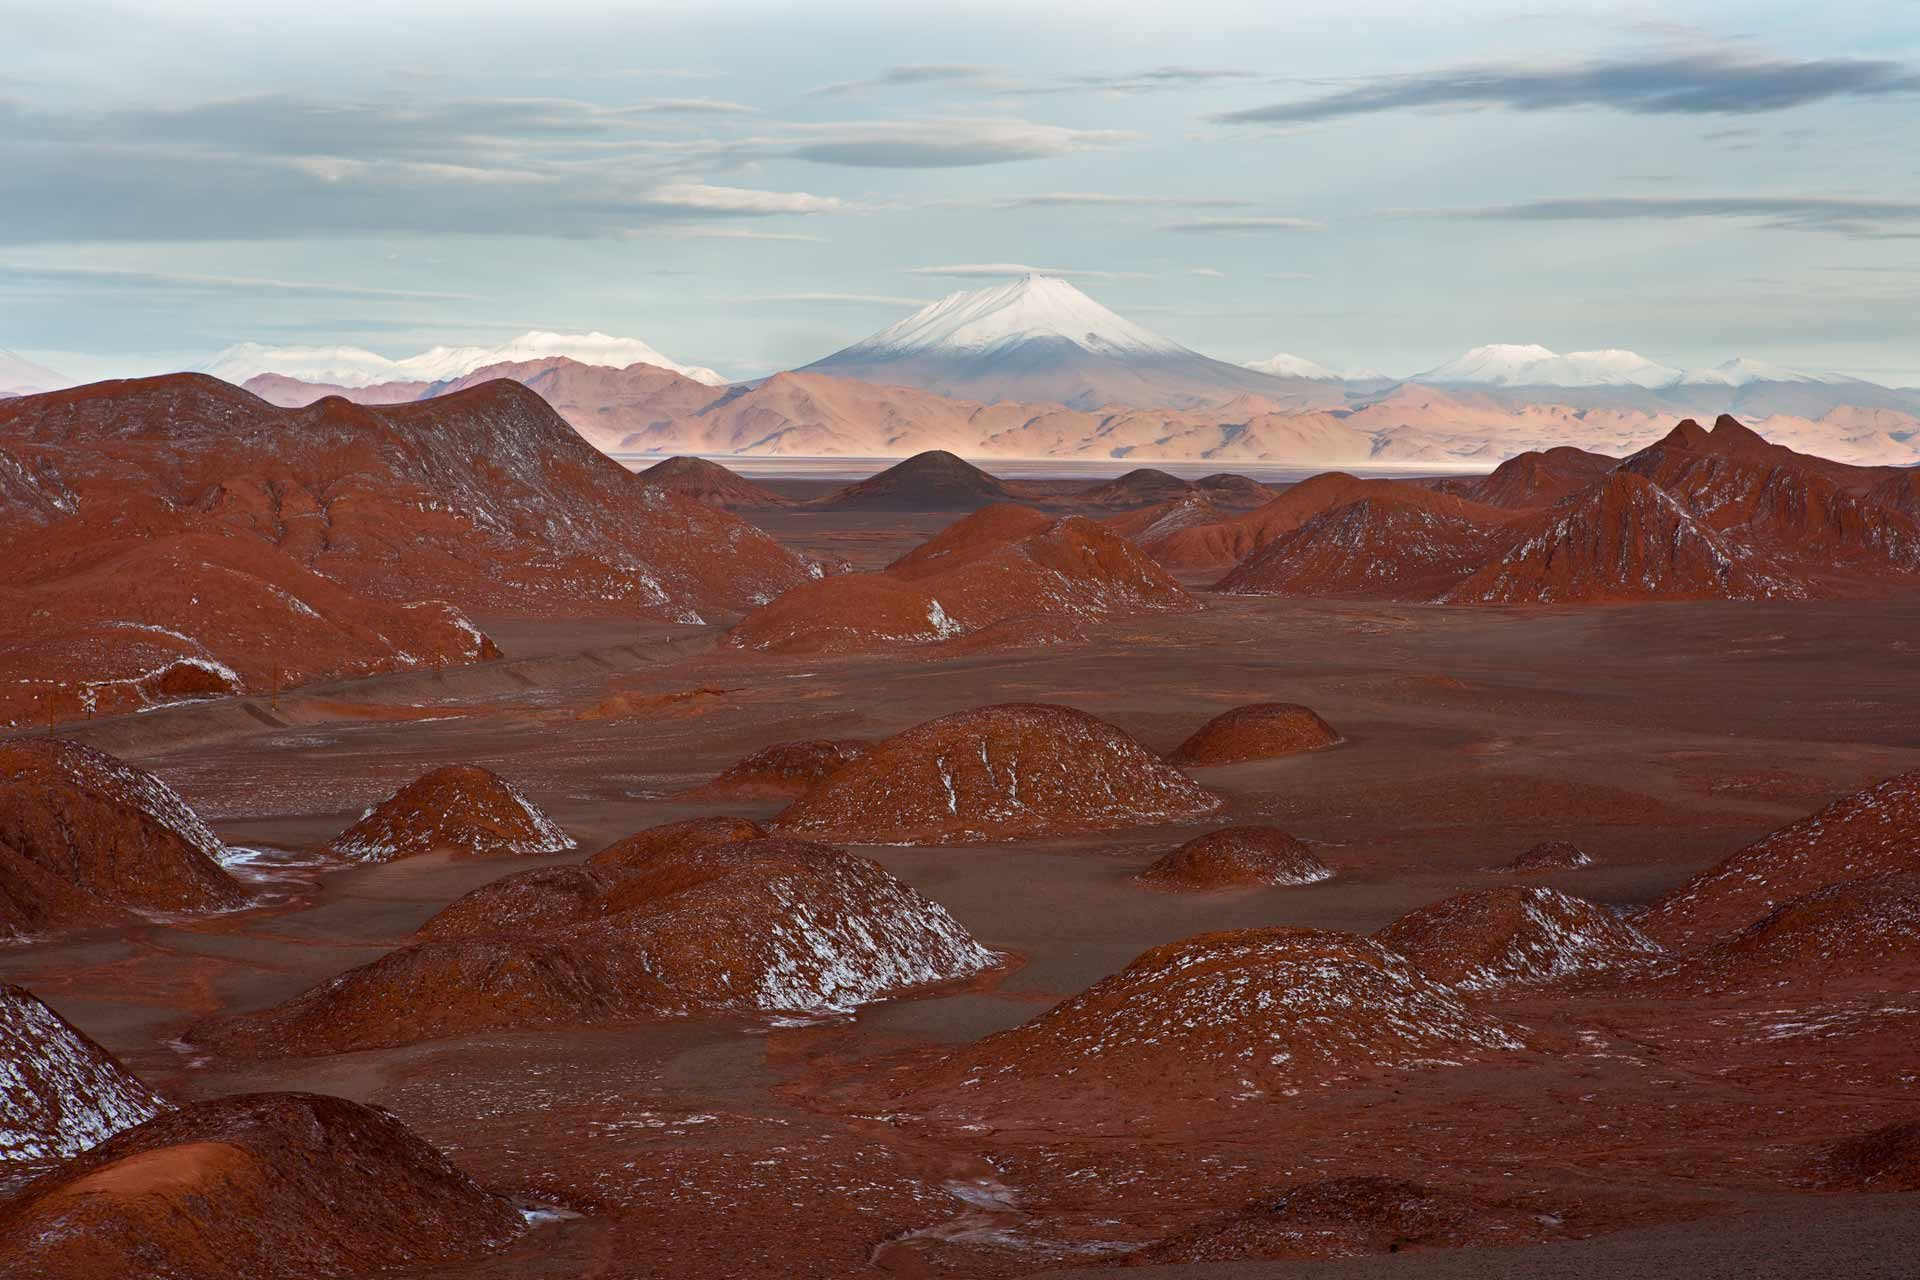 La Puna – The High Desert in South America